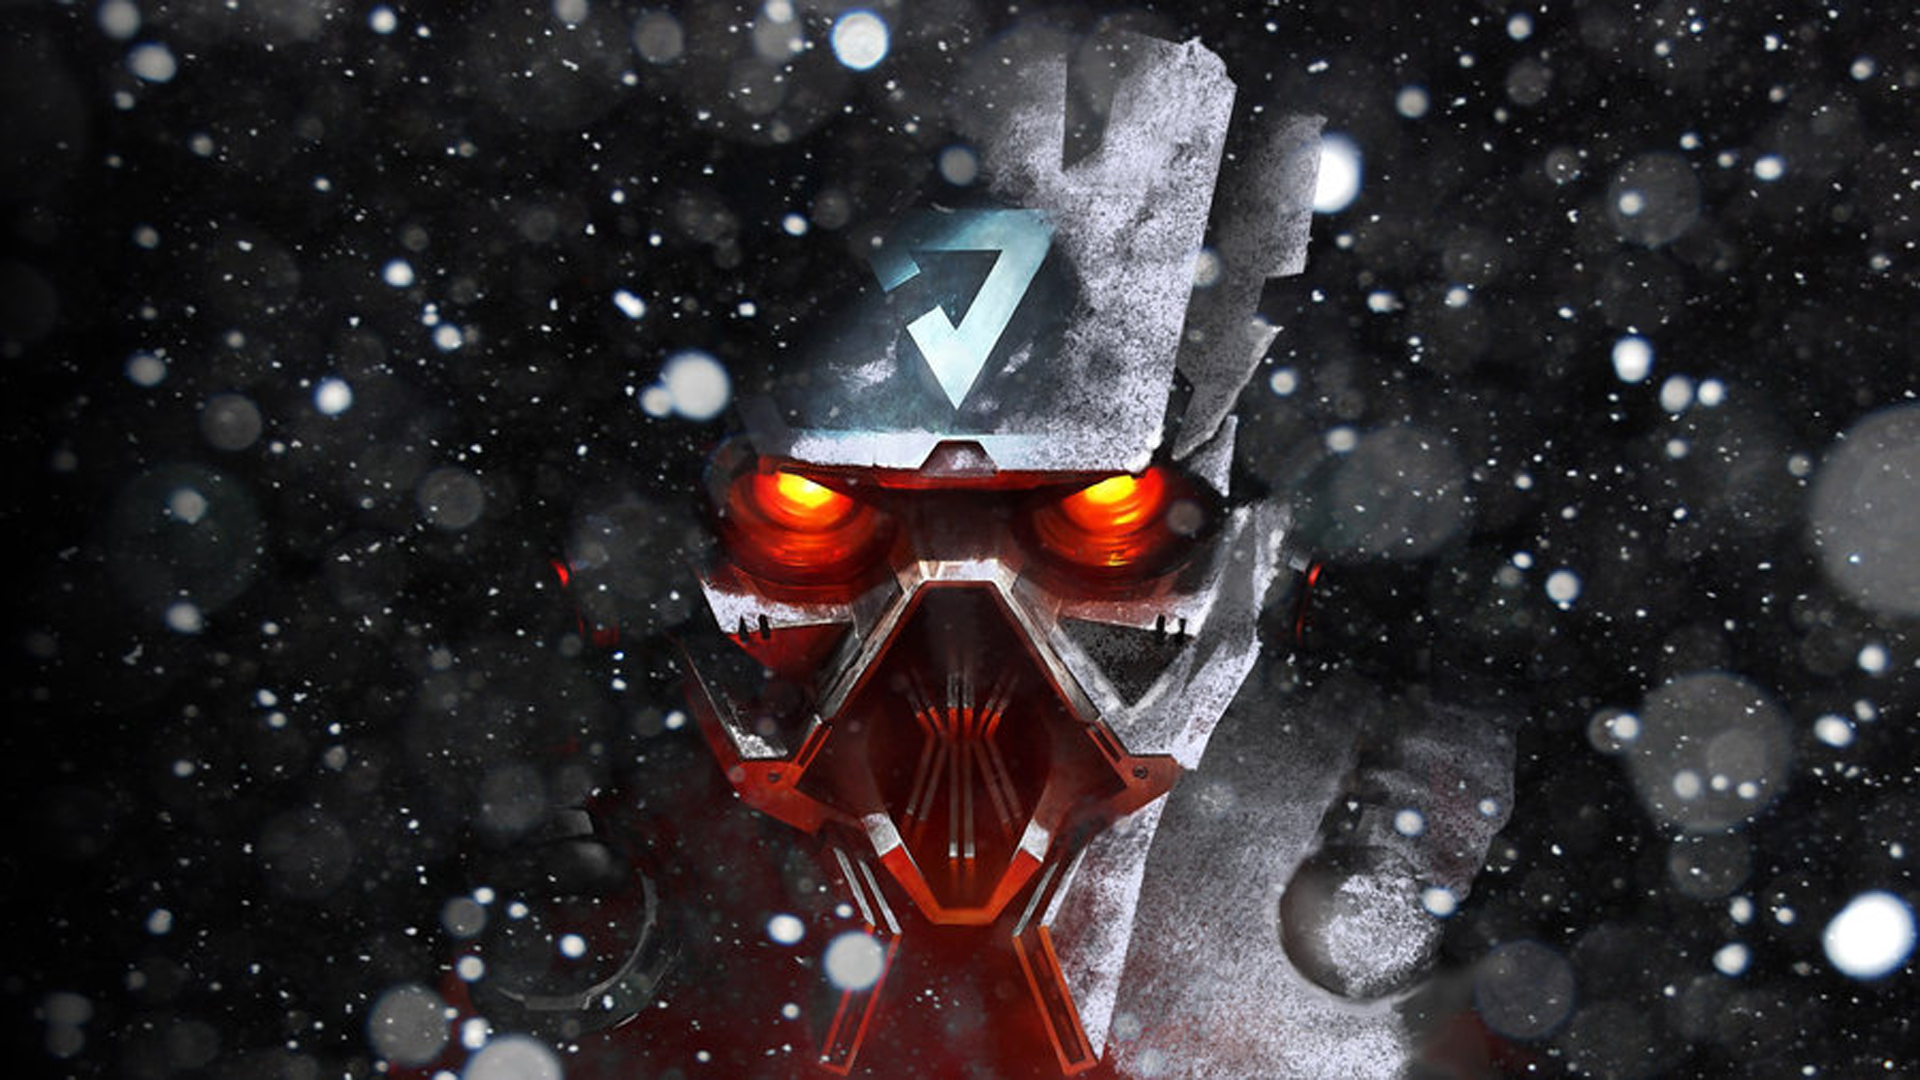 Killzone 3 Wallpaper 22654 1920x1080 px ~ HDWallSource.com